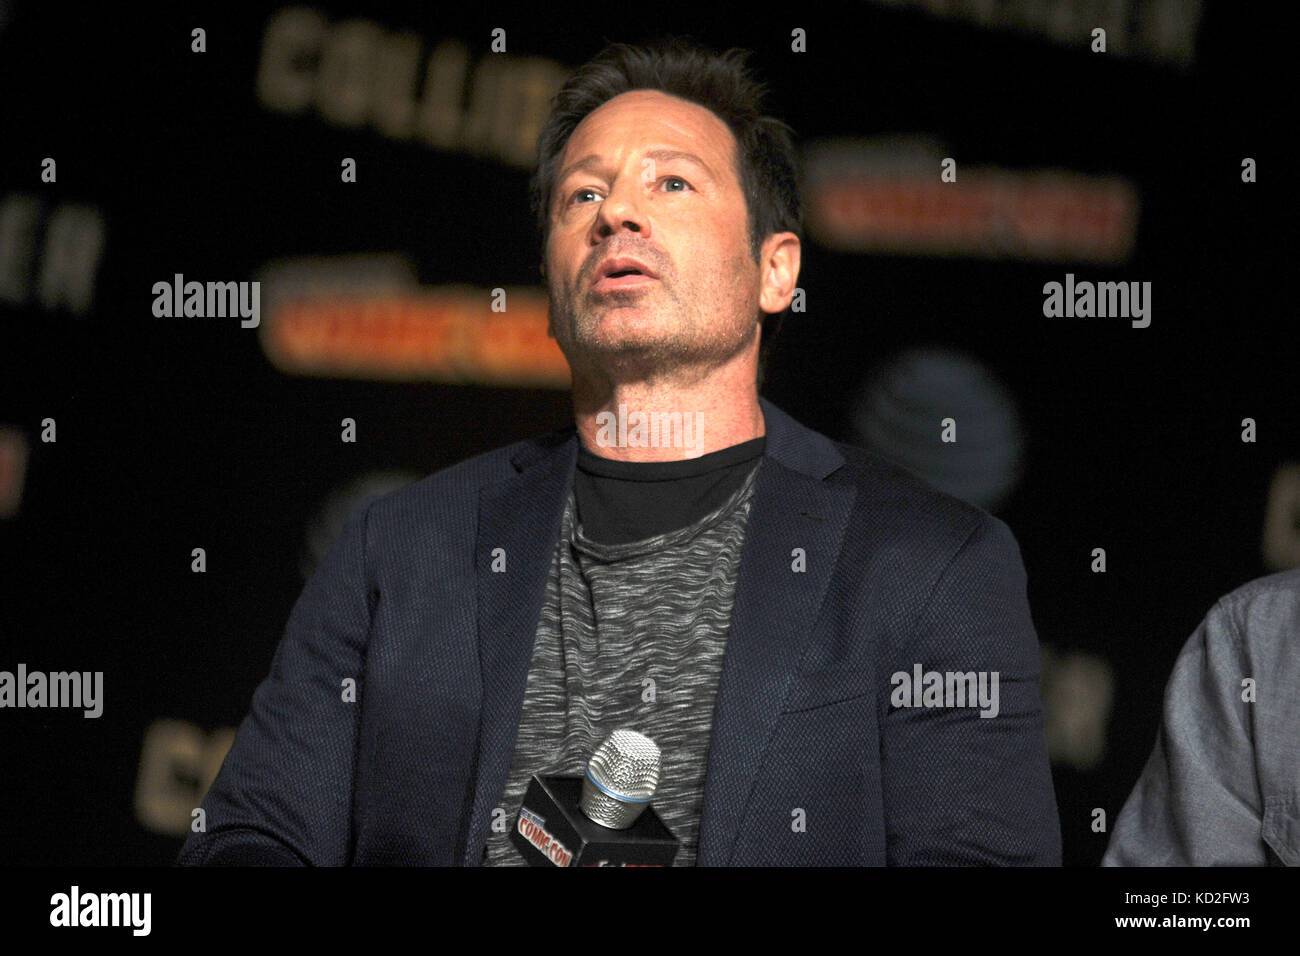 New York, USA. 8th Oct, 2017. David Duchovny speaks at The X-Files panel during the New York Comic Con 2017 at Javits - Stock Image